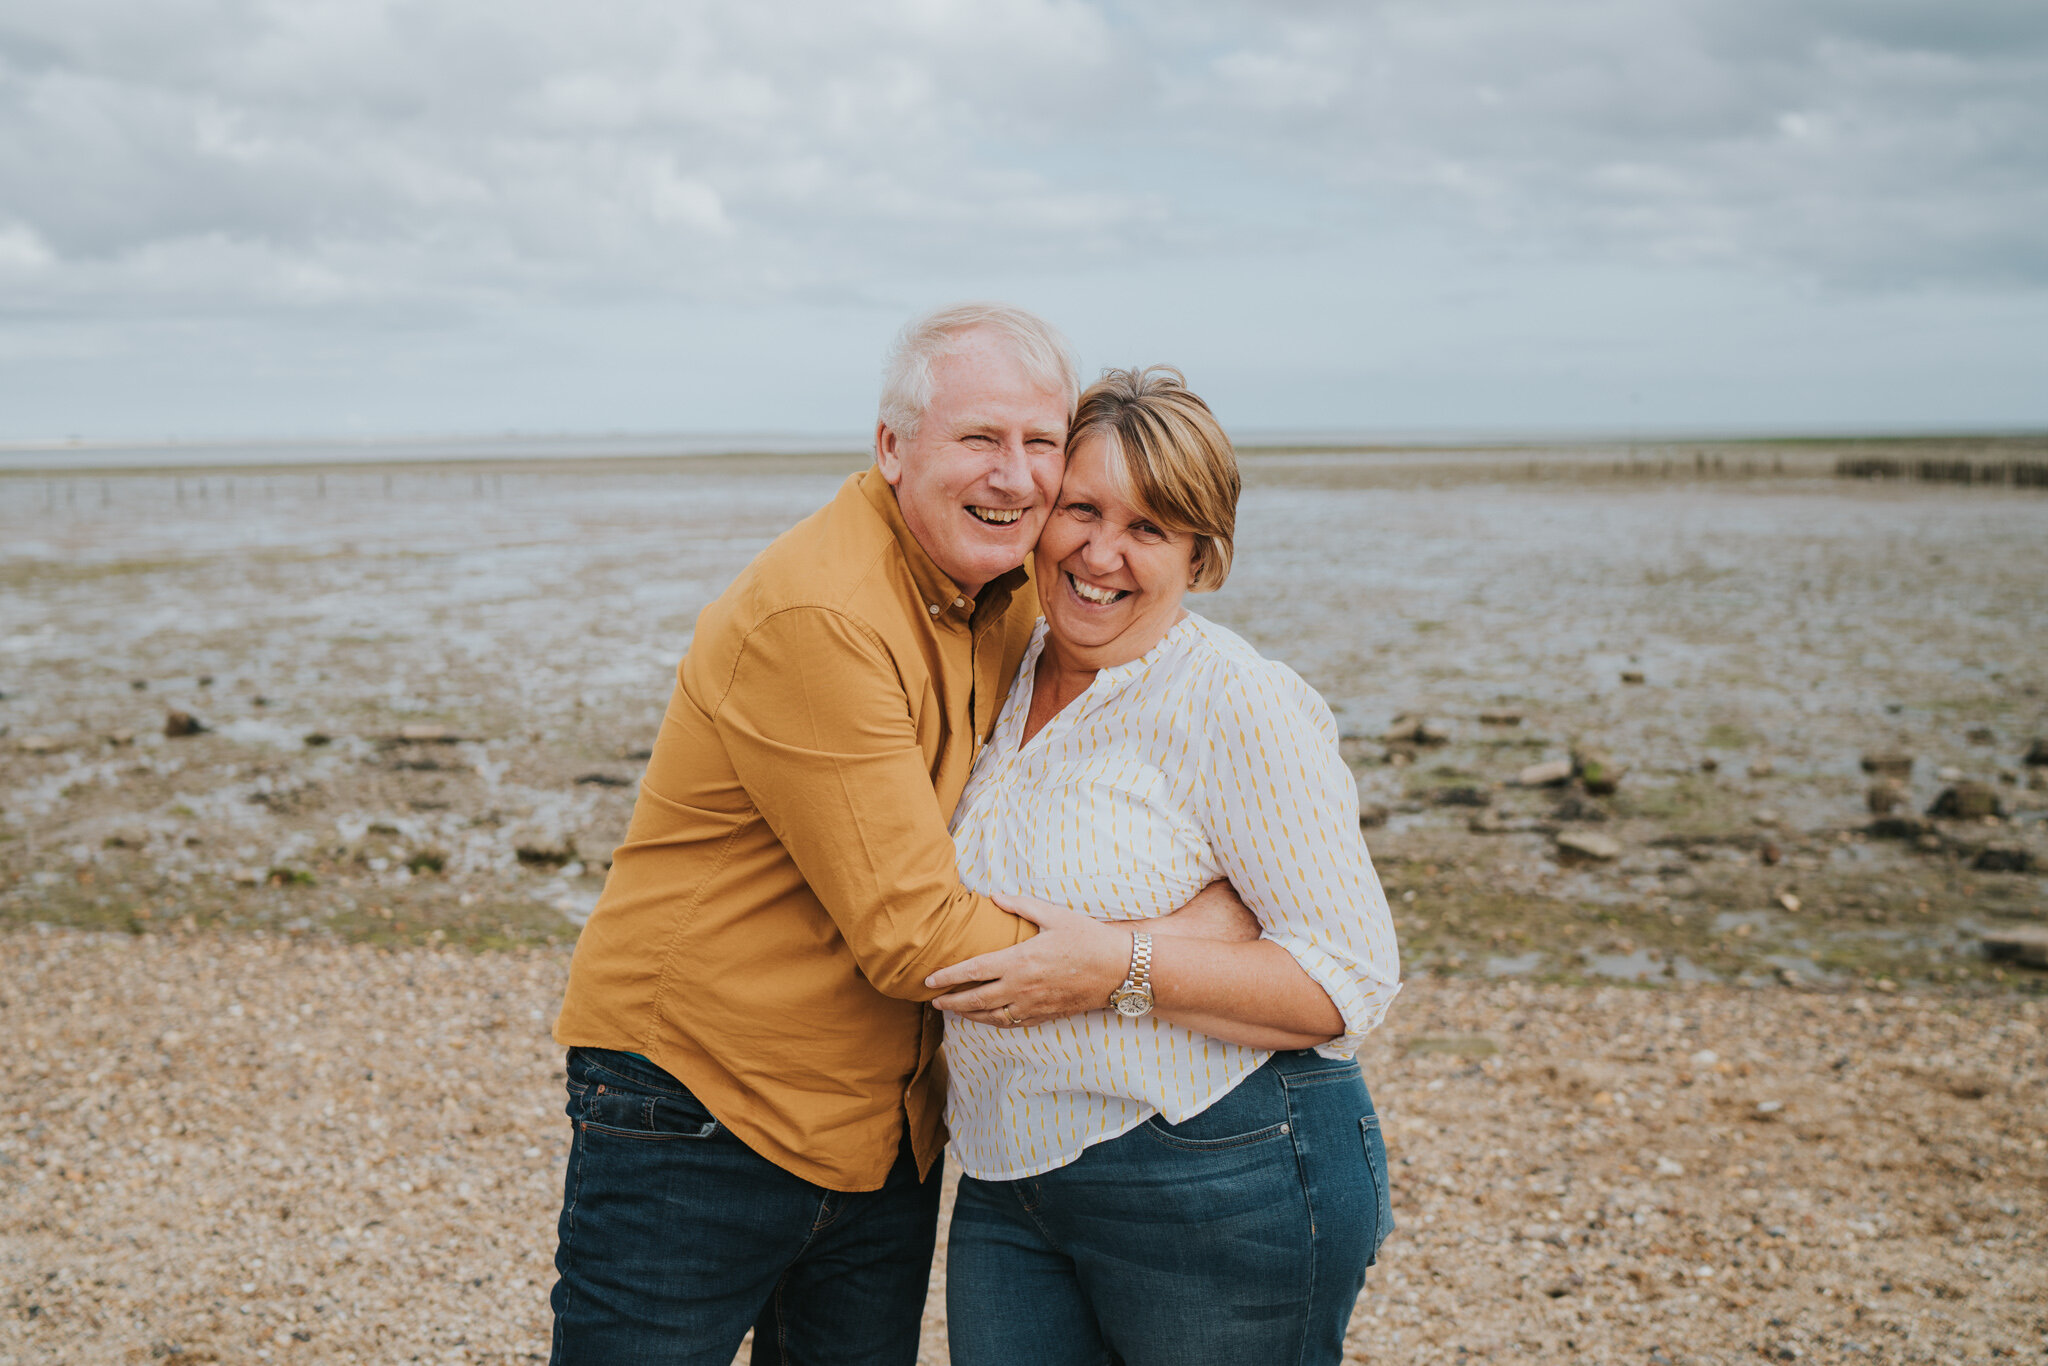 celebratory-beach-family-session-thomson-family-cudmore-grove-east-mersea-grace-elizabeth-colchester-essex-devon-suffolk-and-norfolk-alternative-wedding-and-family-photographer (4 of 53).jpg